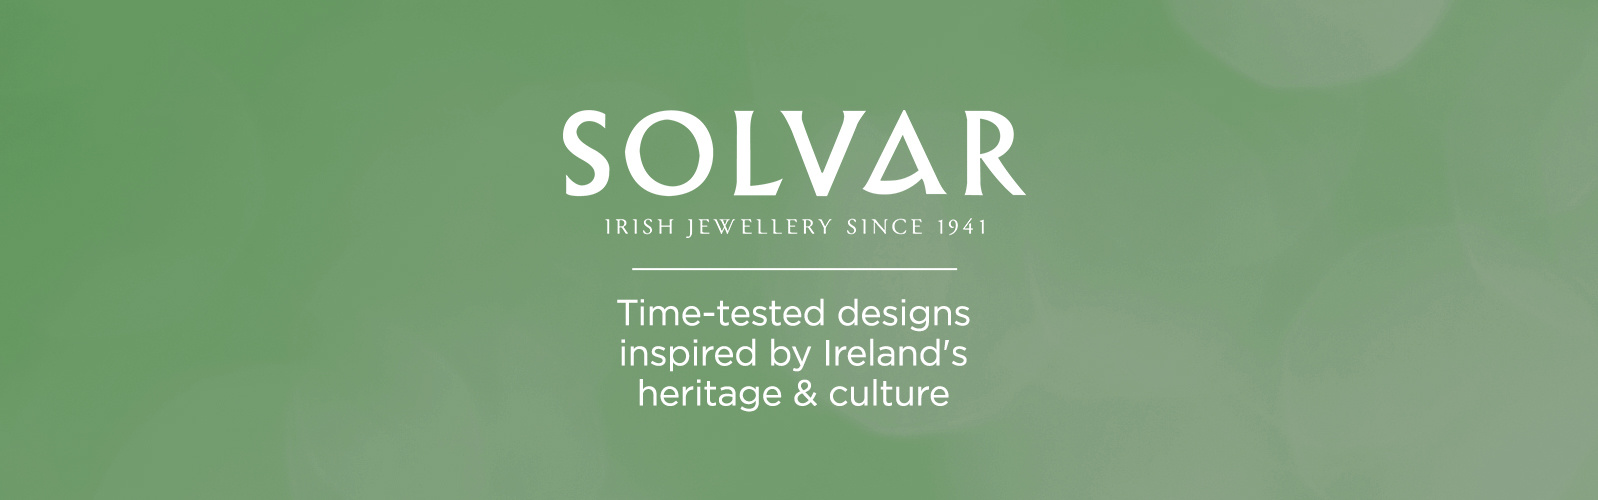 Solvar - Time-tested designs inspired by Ireland's heritage & culture